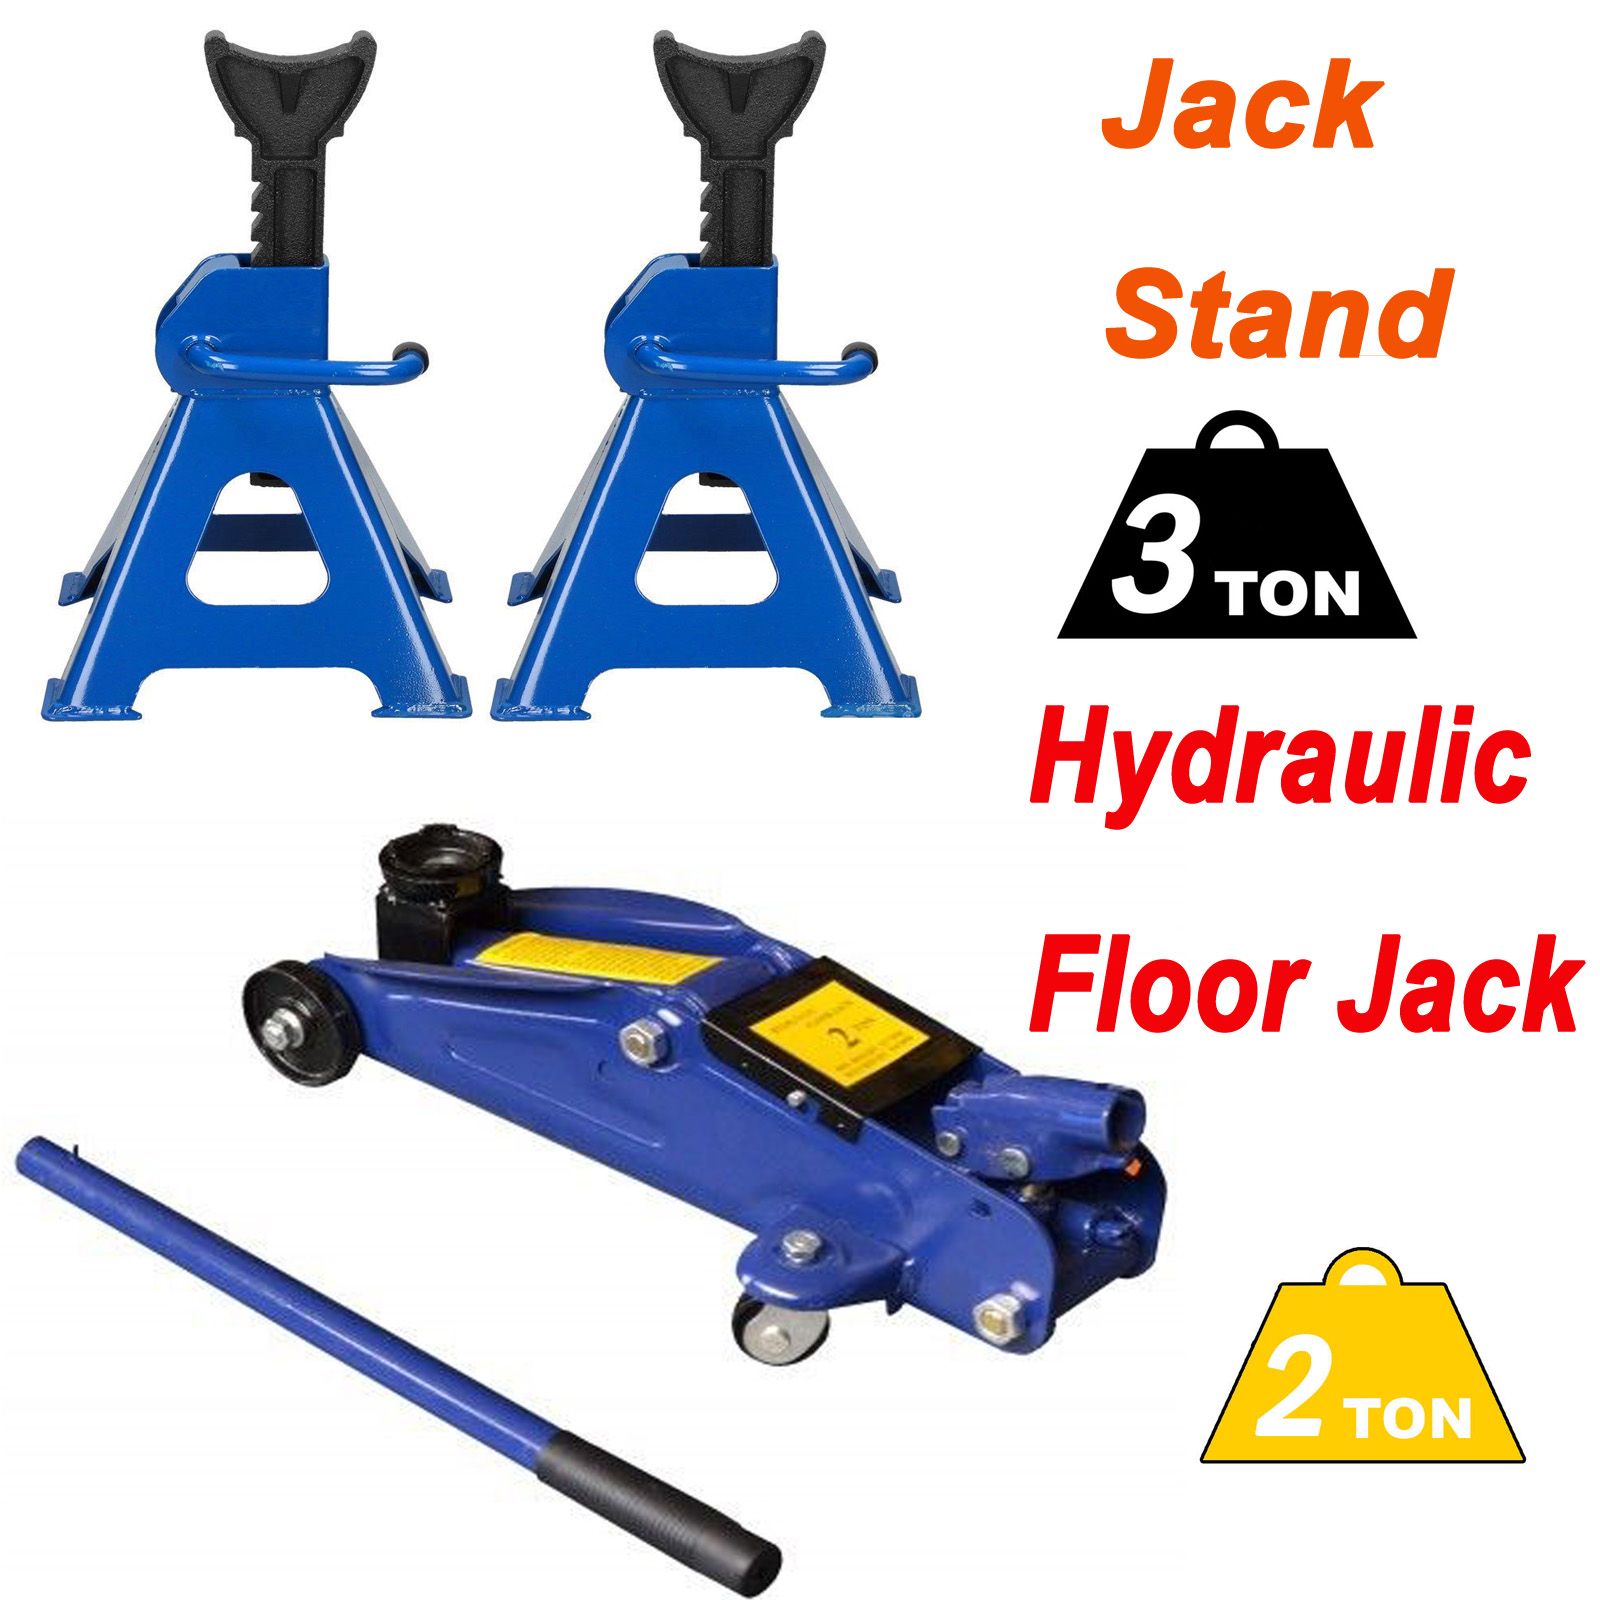 Details about 3T Car Jack Stand Axle Support Vehicle Holder Lift Tool + 2T  Floor Jack Lifting